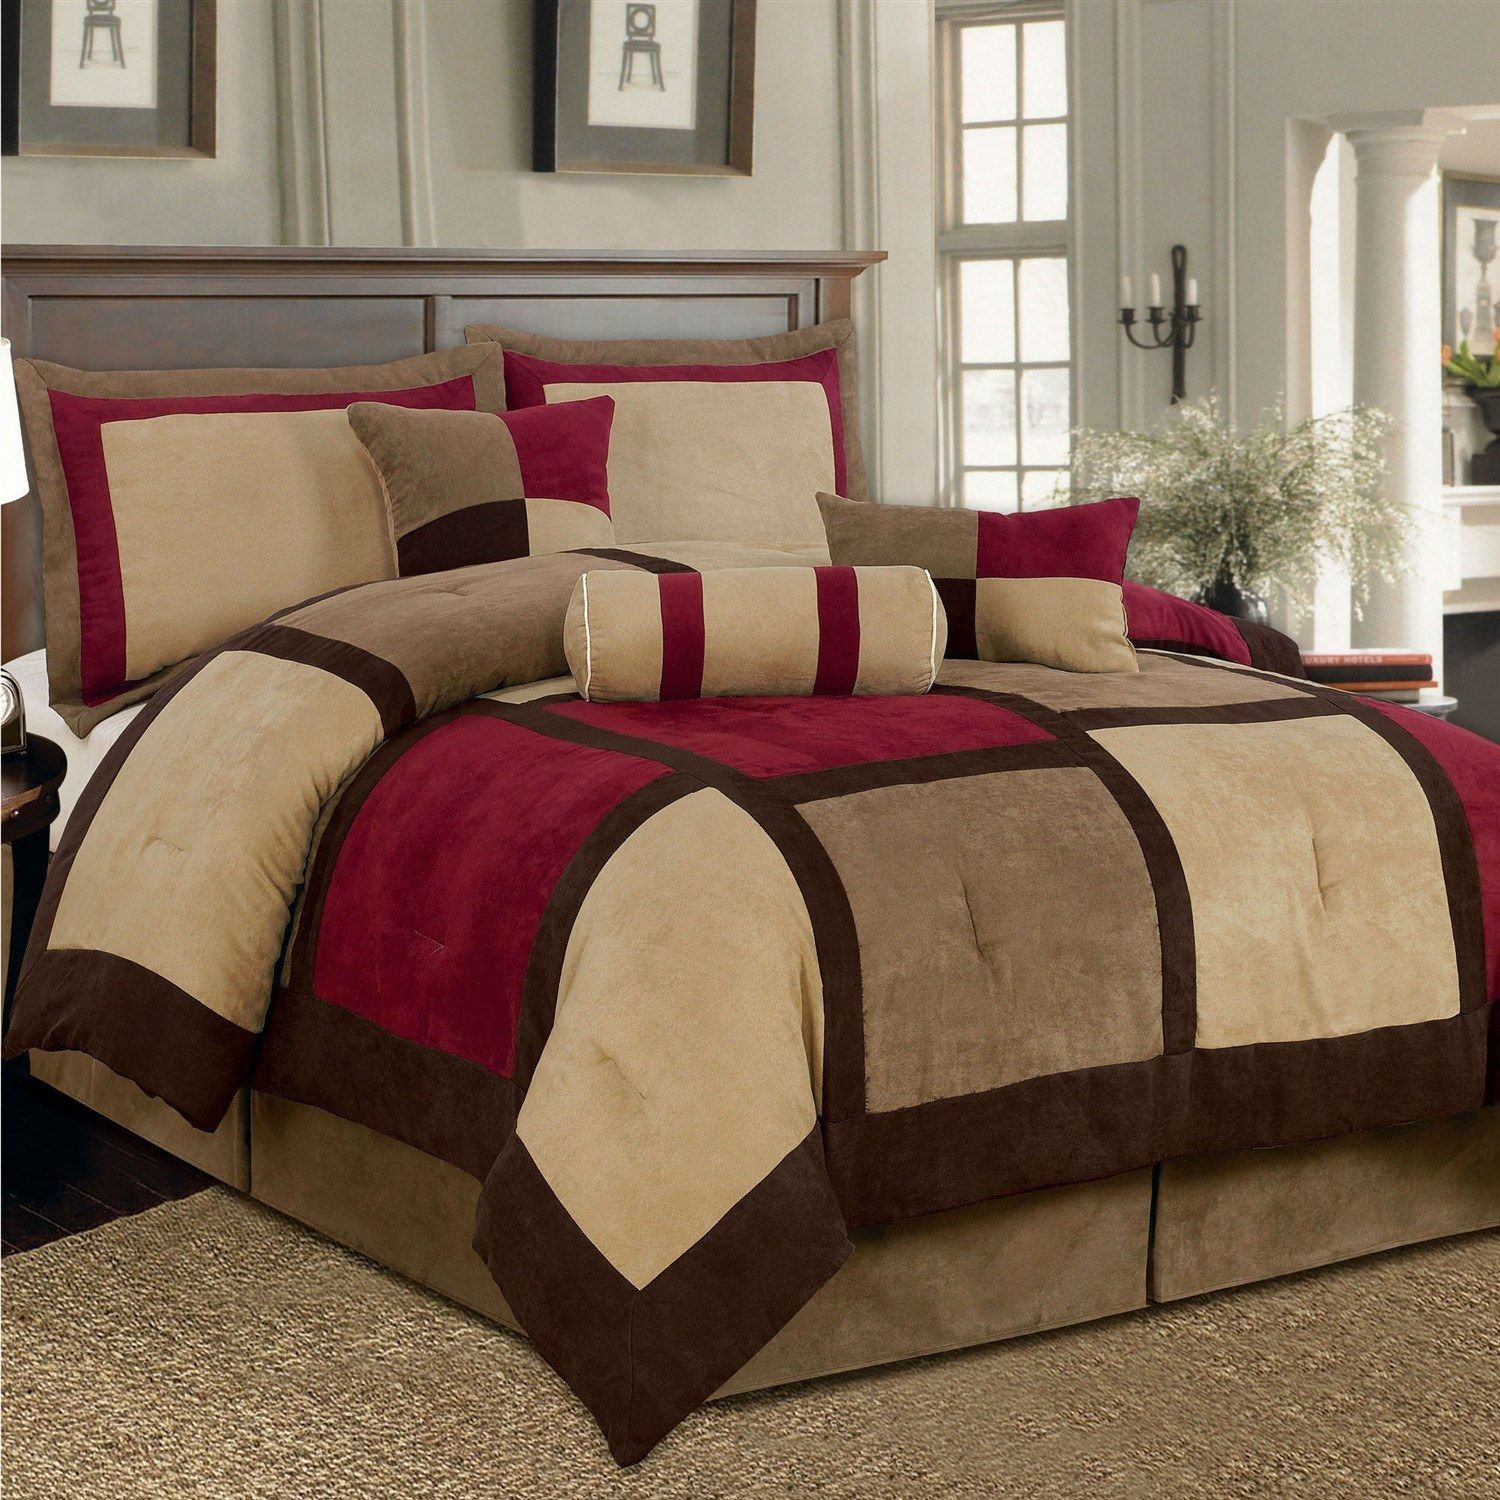 elegant bedding set quotations beige guides piece on deals comforter suede stripe turquoise blue find get micro grey cheap queen line at shopping